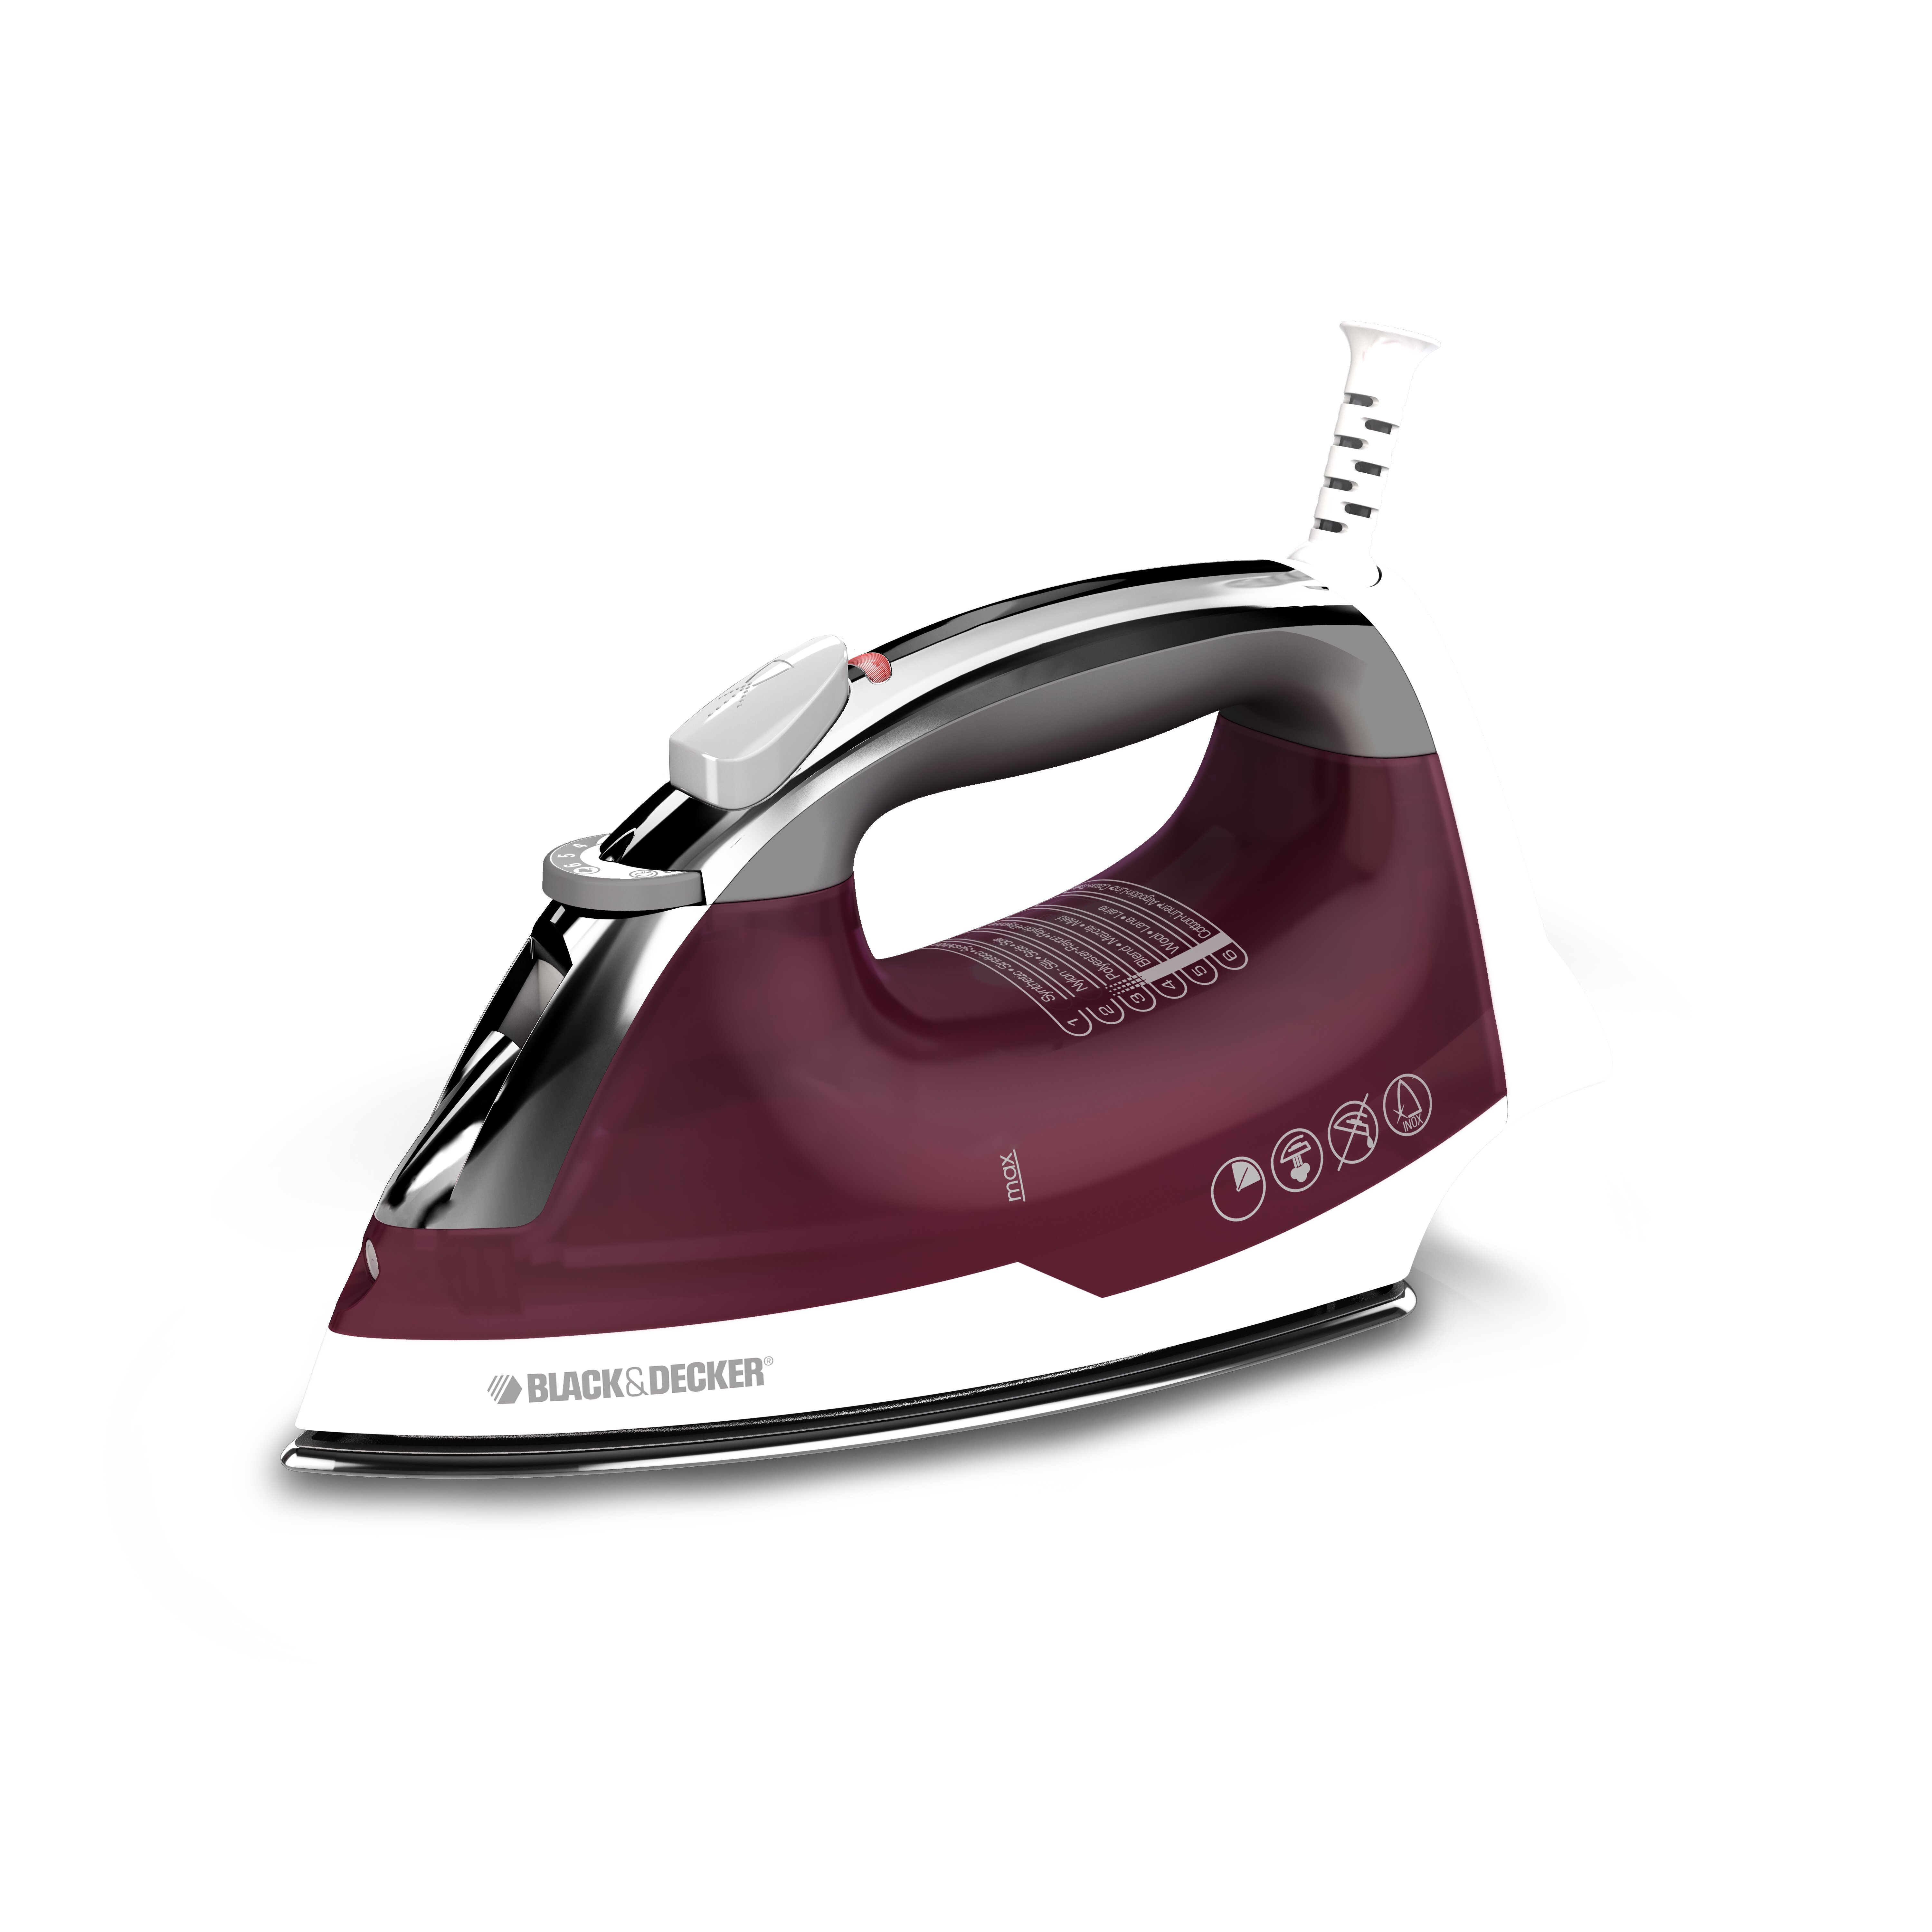 black and decker iron black amp decker easy steam stainless steel iron amp reviews 31473